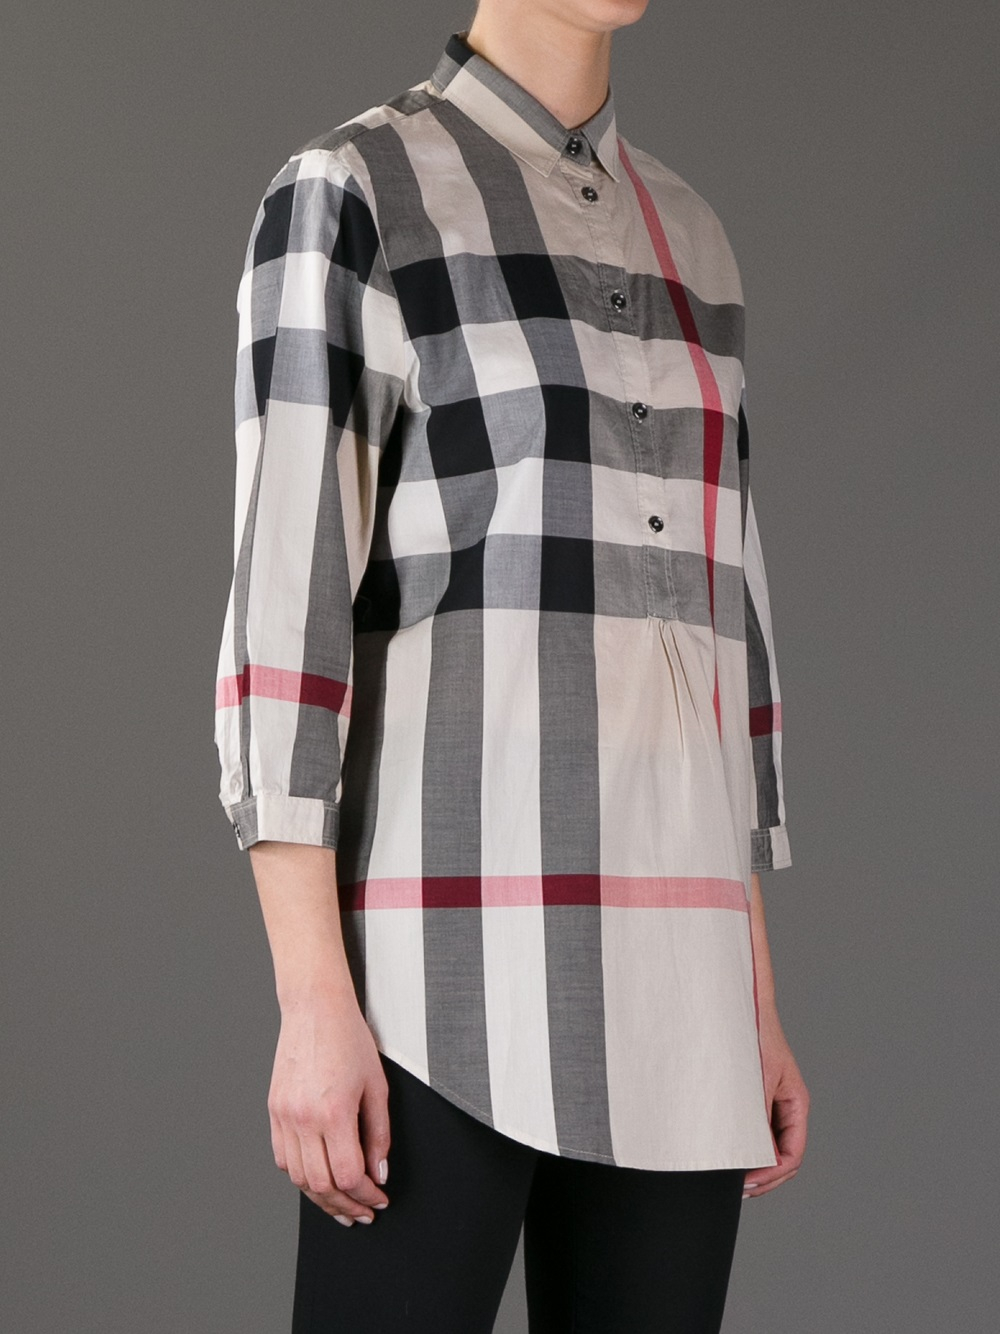 Lyst burberry brit checked print shirt in gray for Burberry brit checked shirt